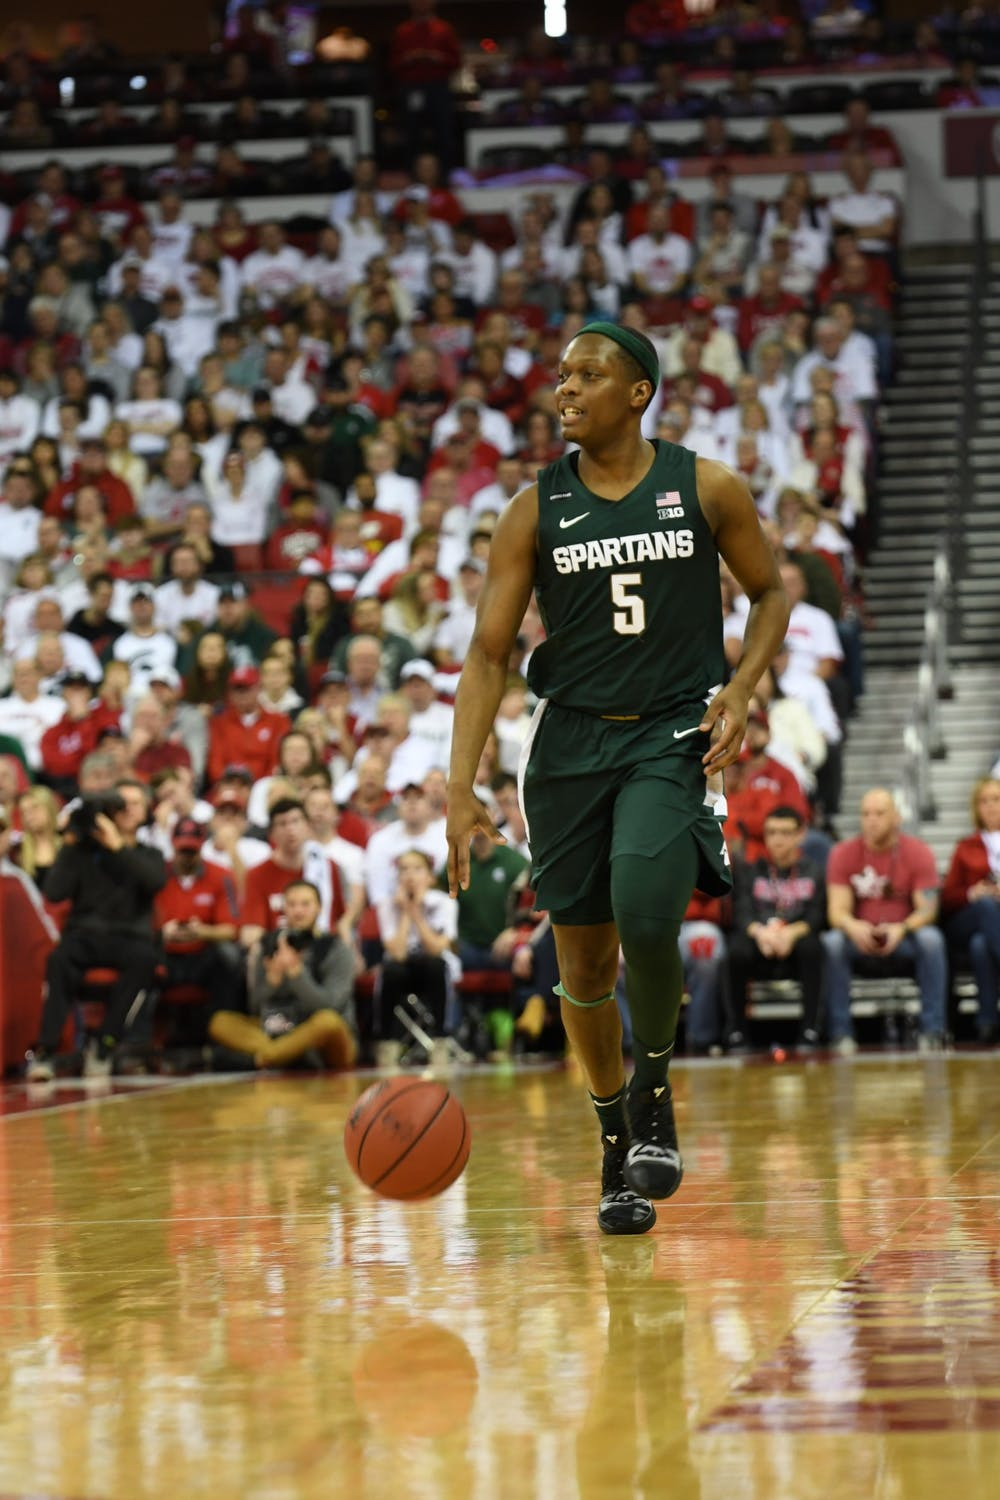 Senior guard Cassius Winston (5) dribbles down the court during the basketball game against Wisconsin at the Kohl Center in Madison, Wisconsin on February 1, 2020. The Spartans fell to the Badgers 63-64.